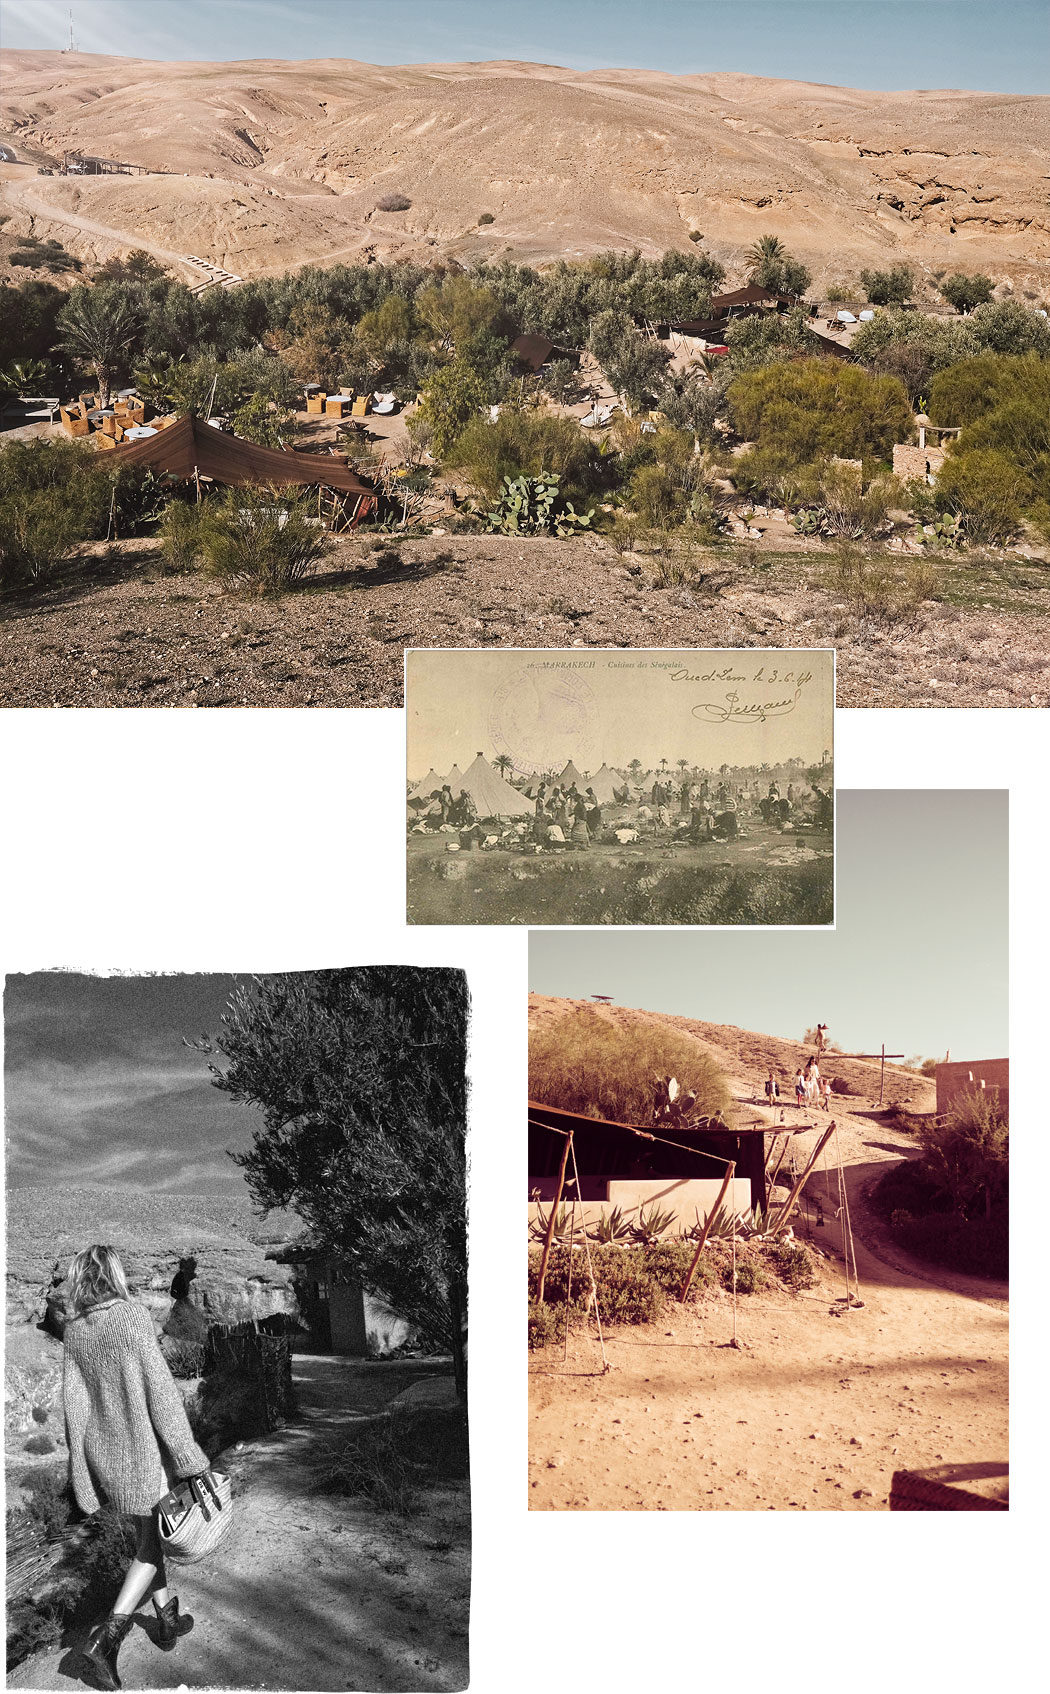 Historical images of Marrakesh desert camp tents holiday - La Pause, Morocco